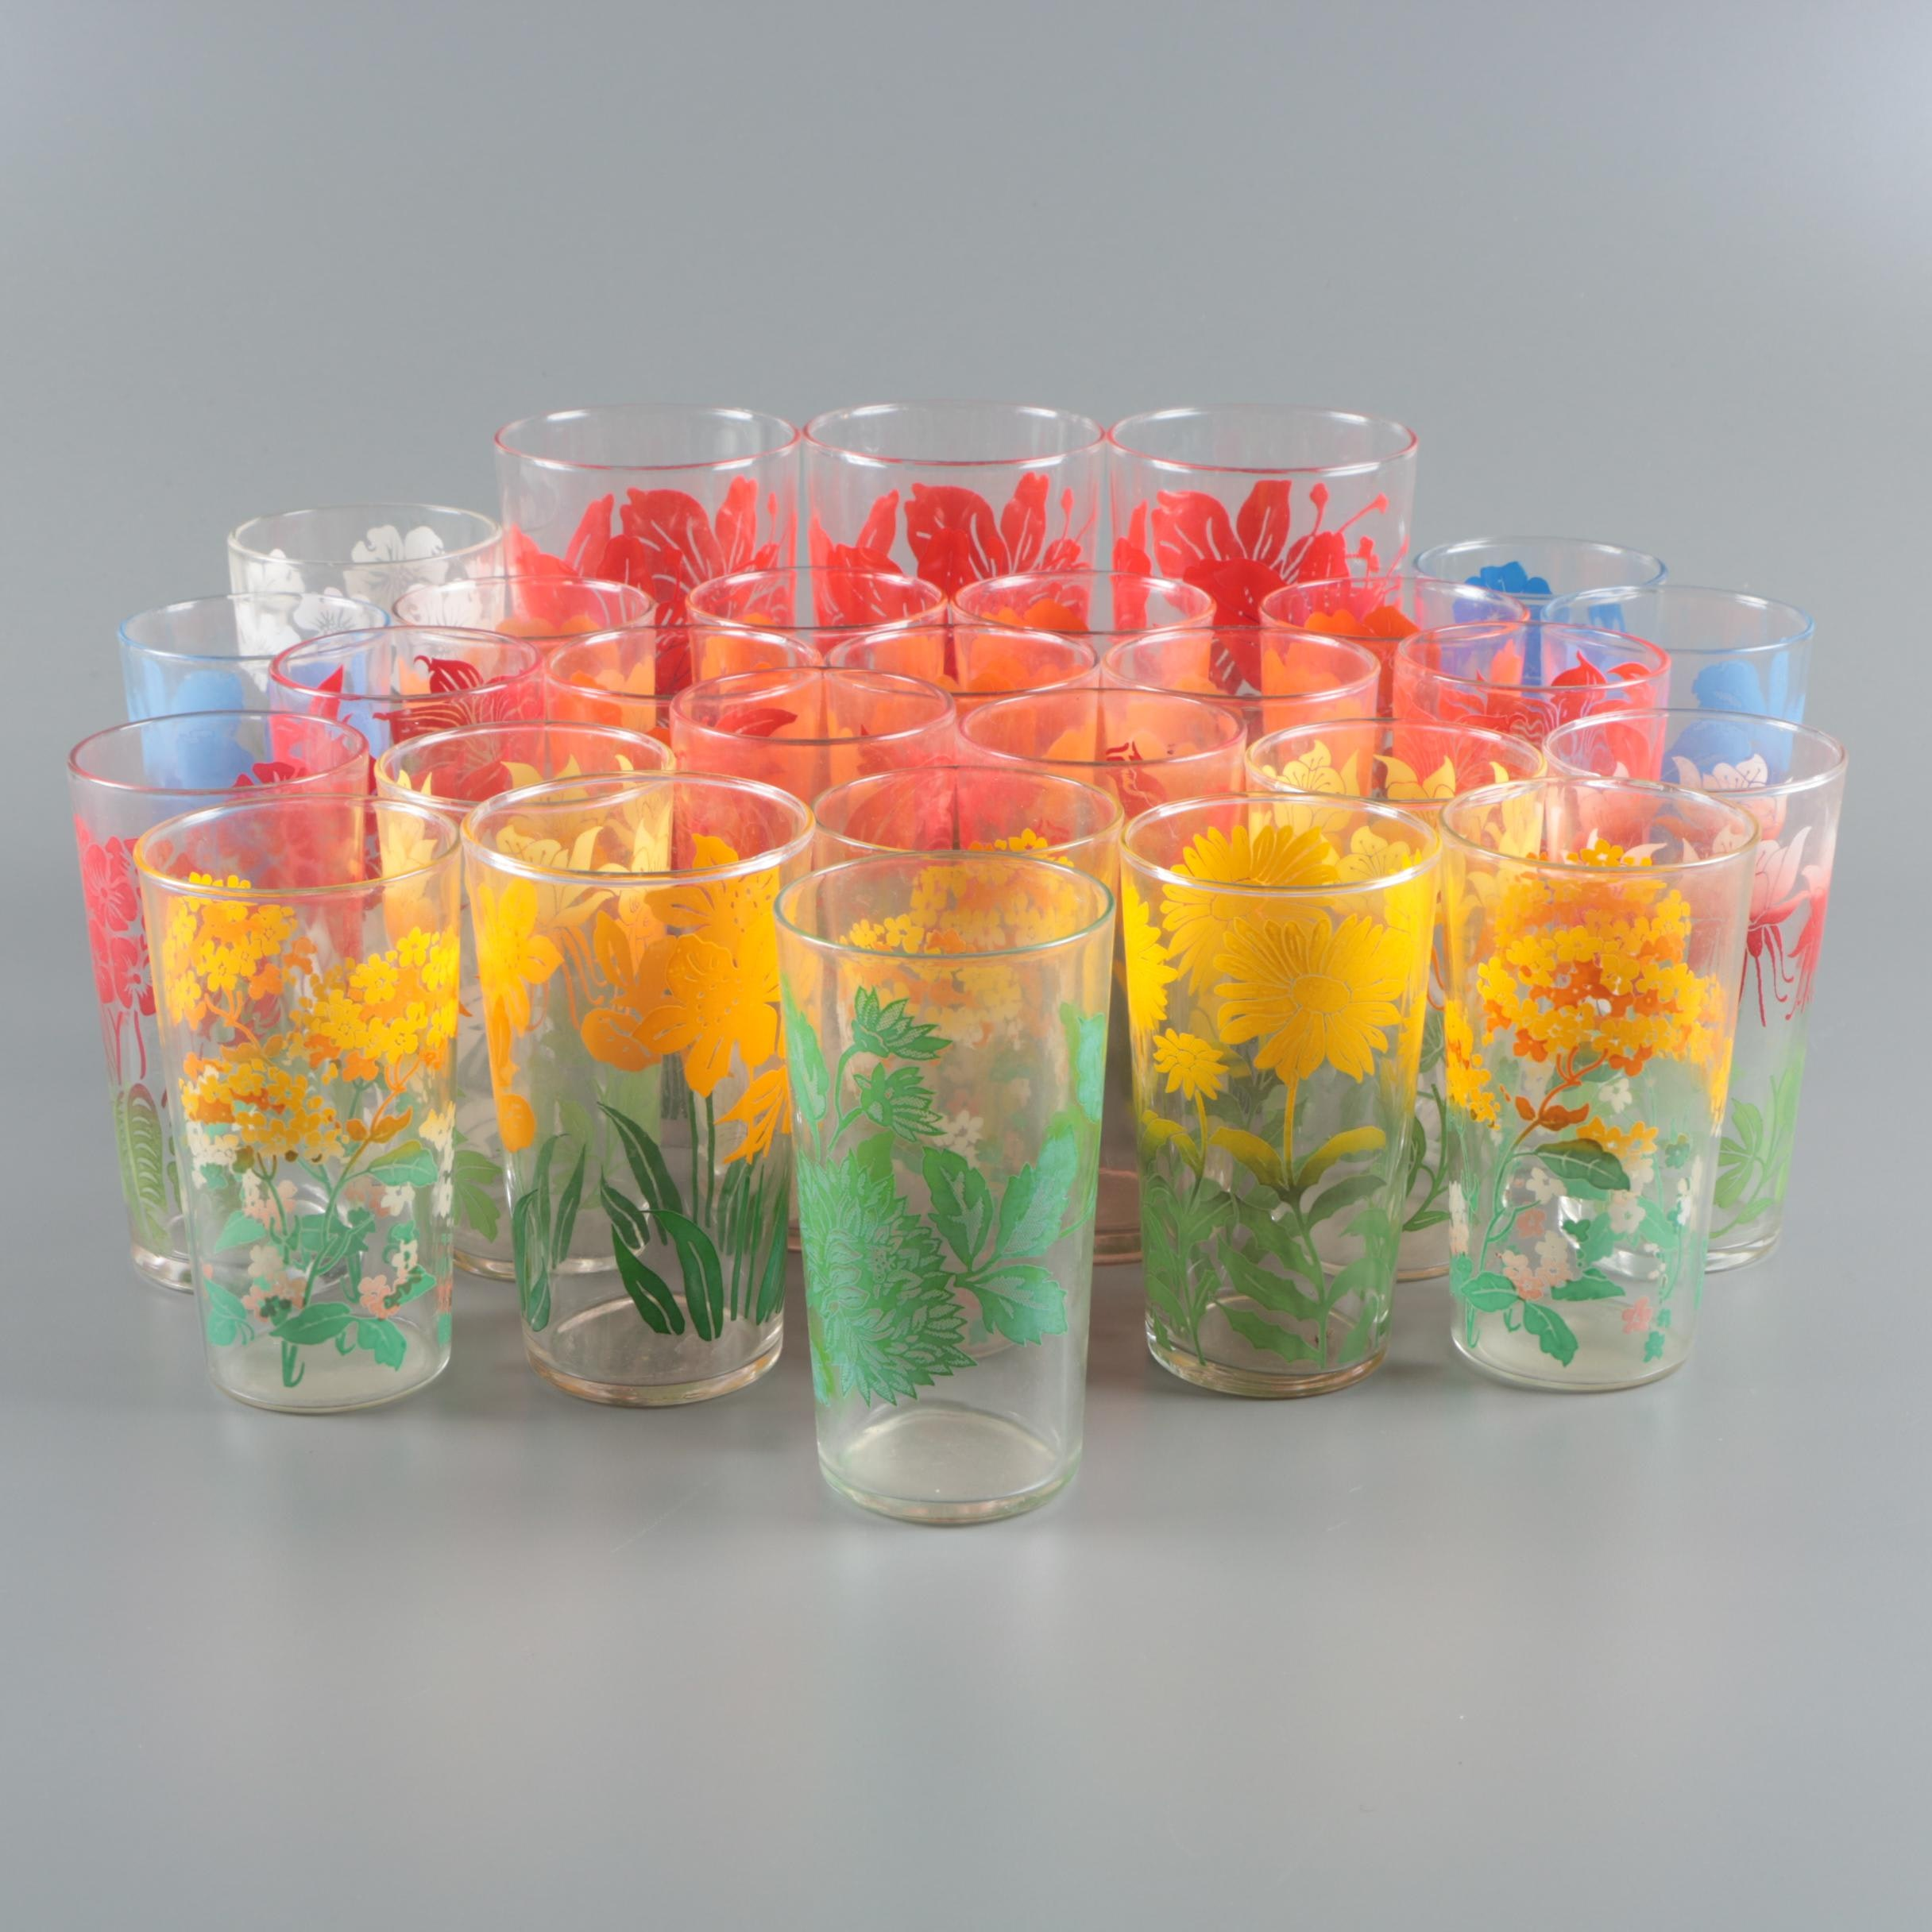 Collection of Colorful Floral Glasses, Circa 1950